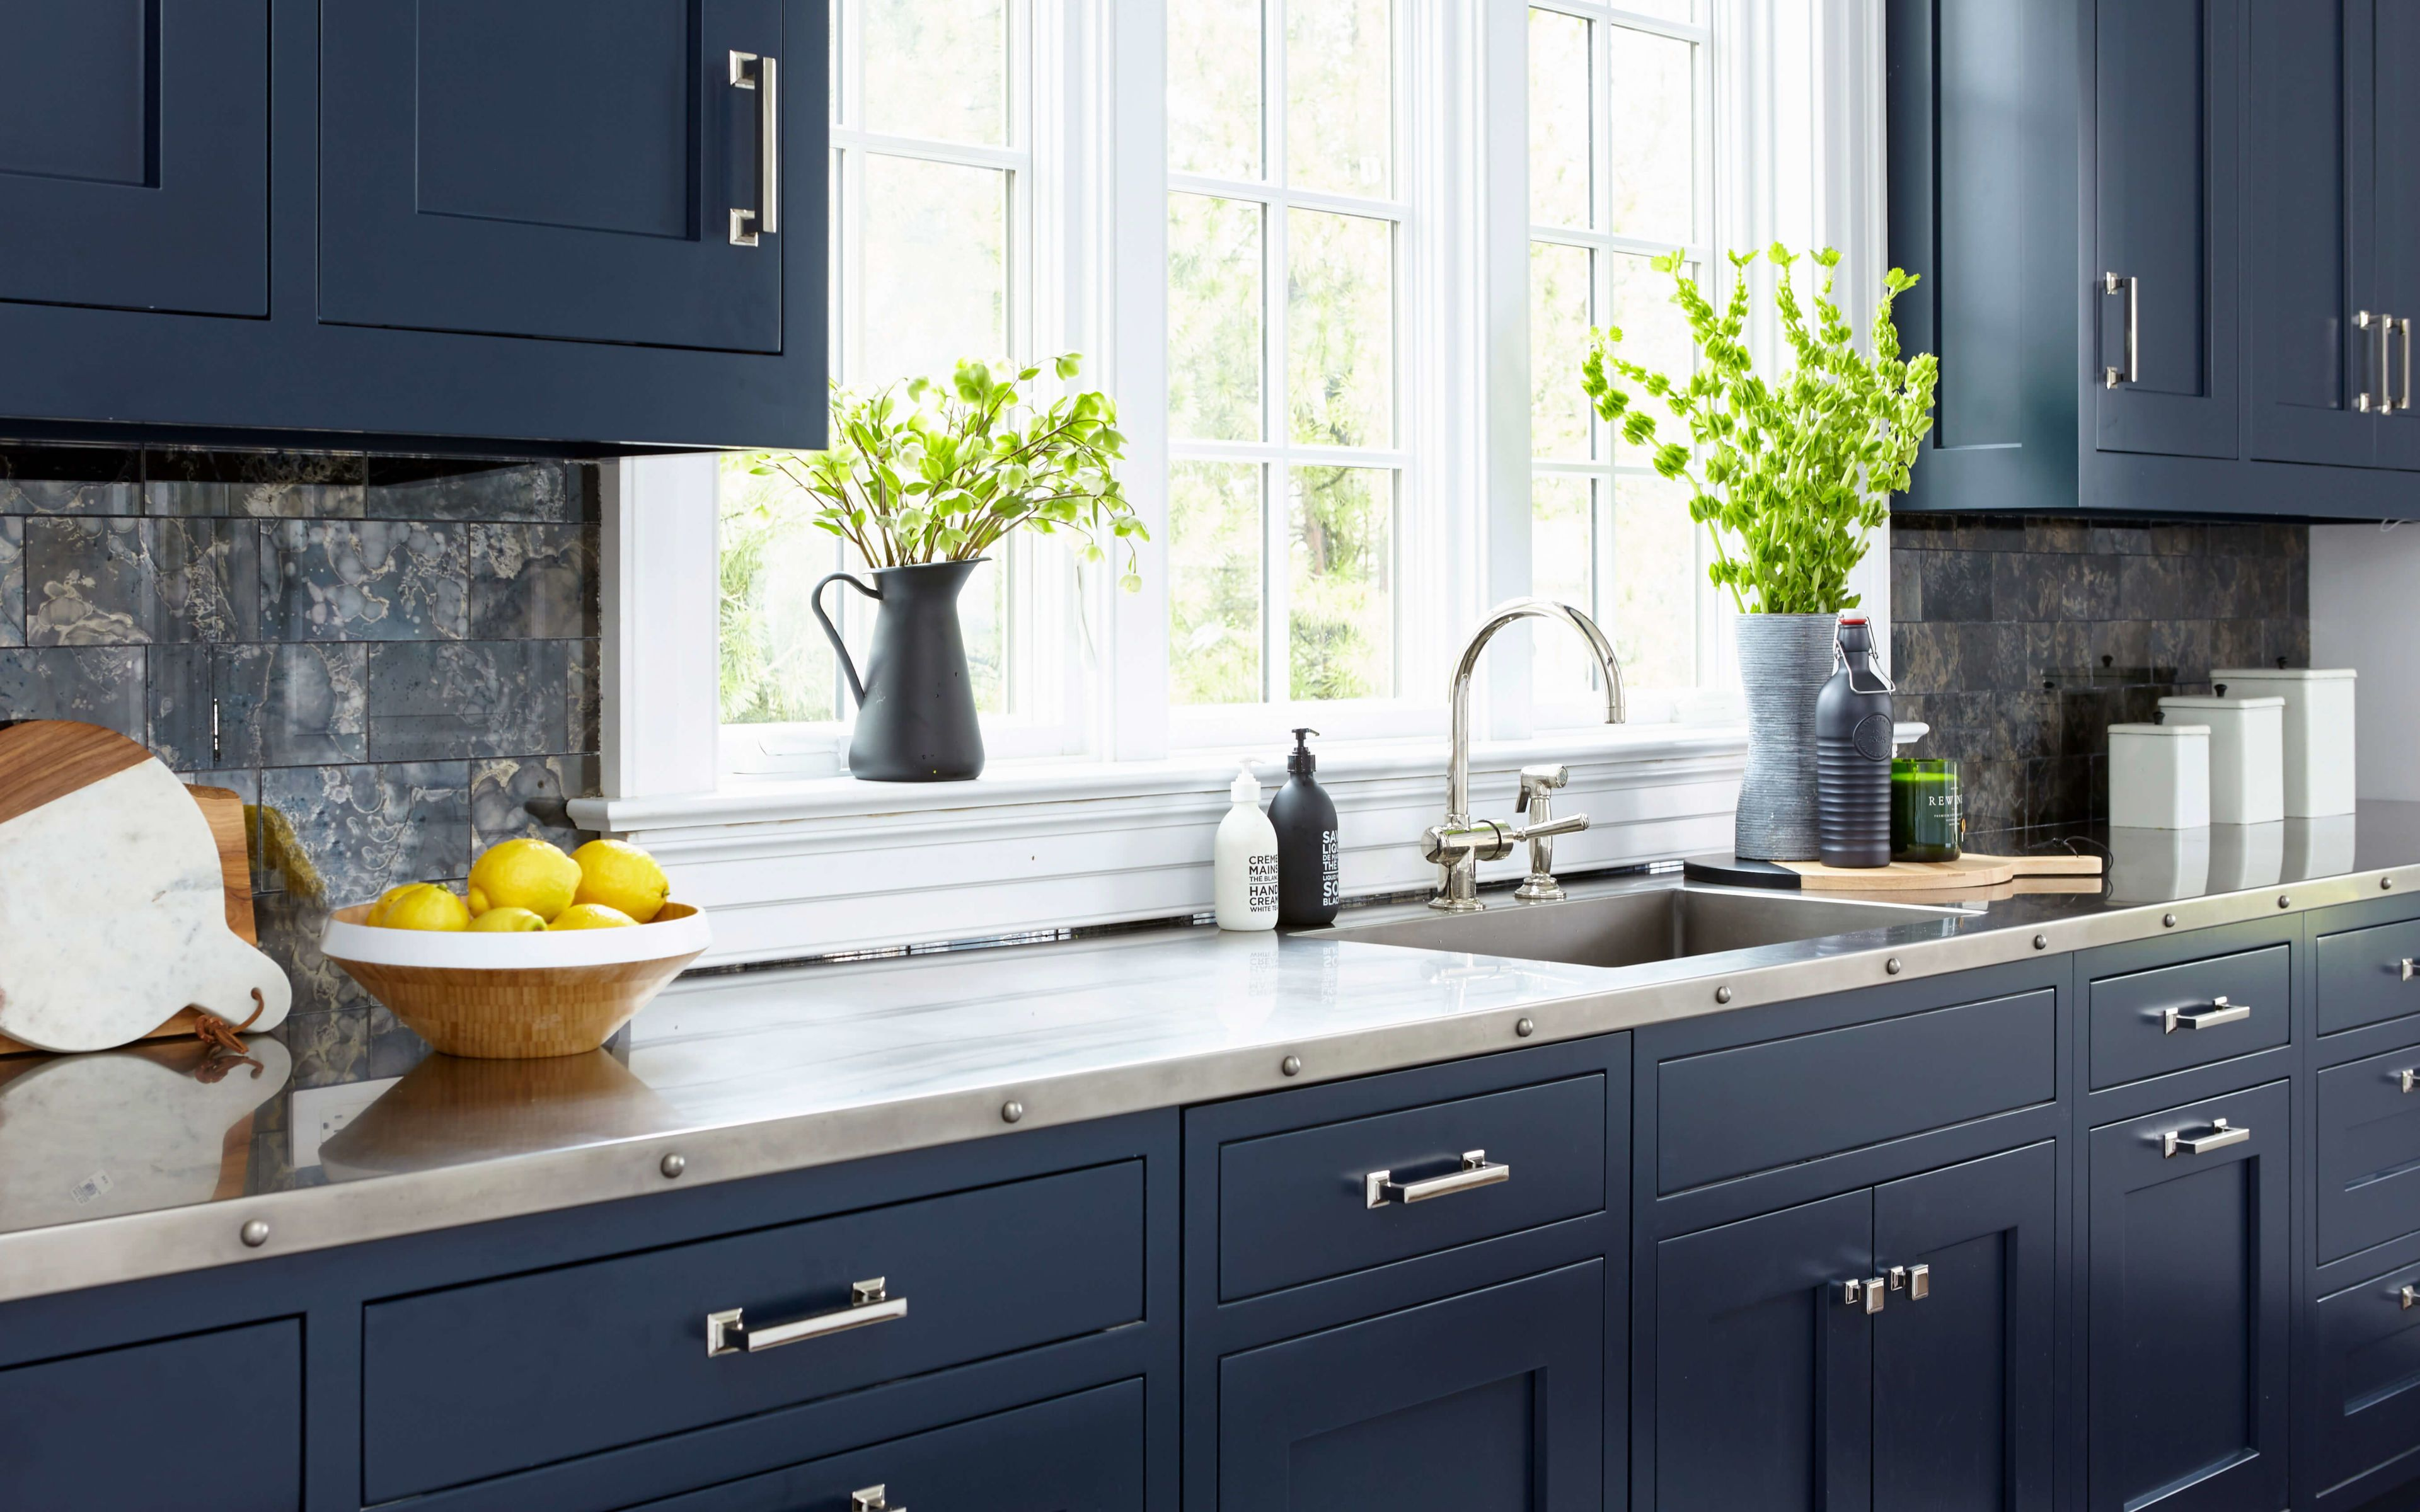 Navy Blue Custom Cabinetry With Stainless Steel Countertop And Sink Large Open Windows To Allo Contemporary Kitchen New Kitchen Cabinets Kitchen Design Trends